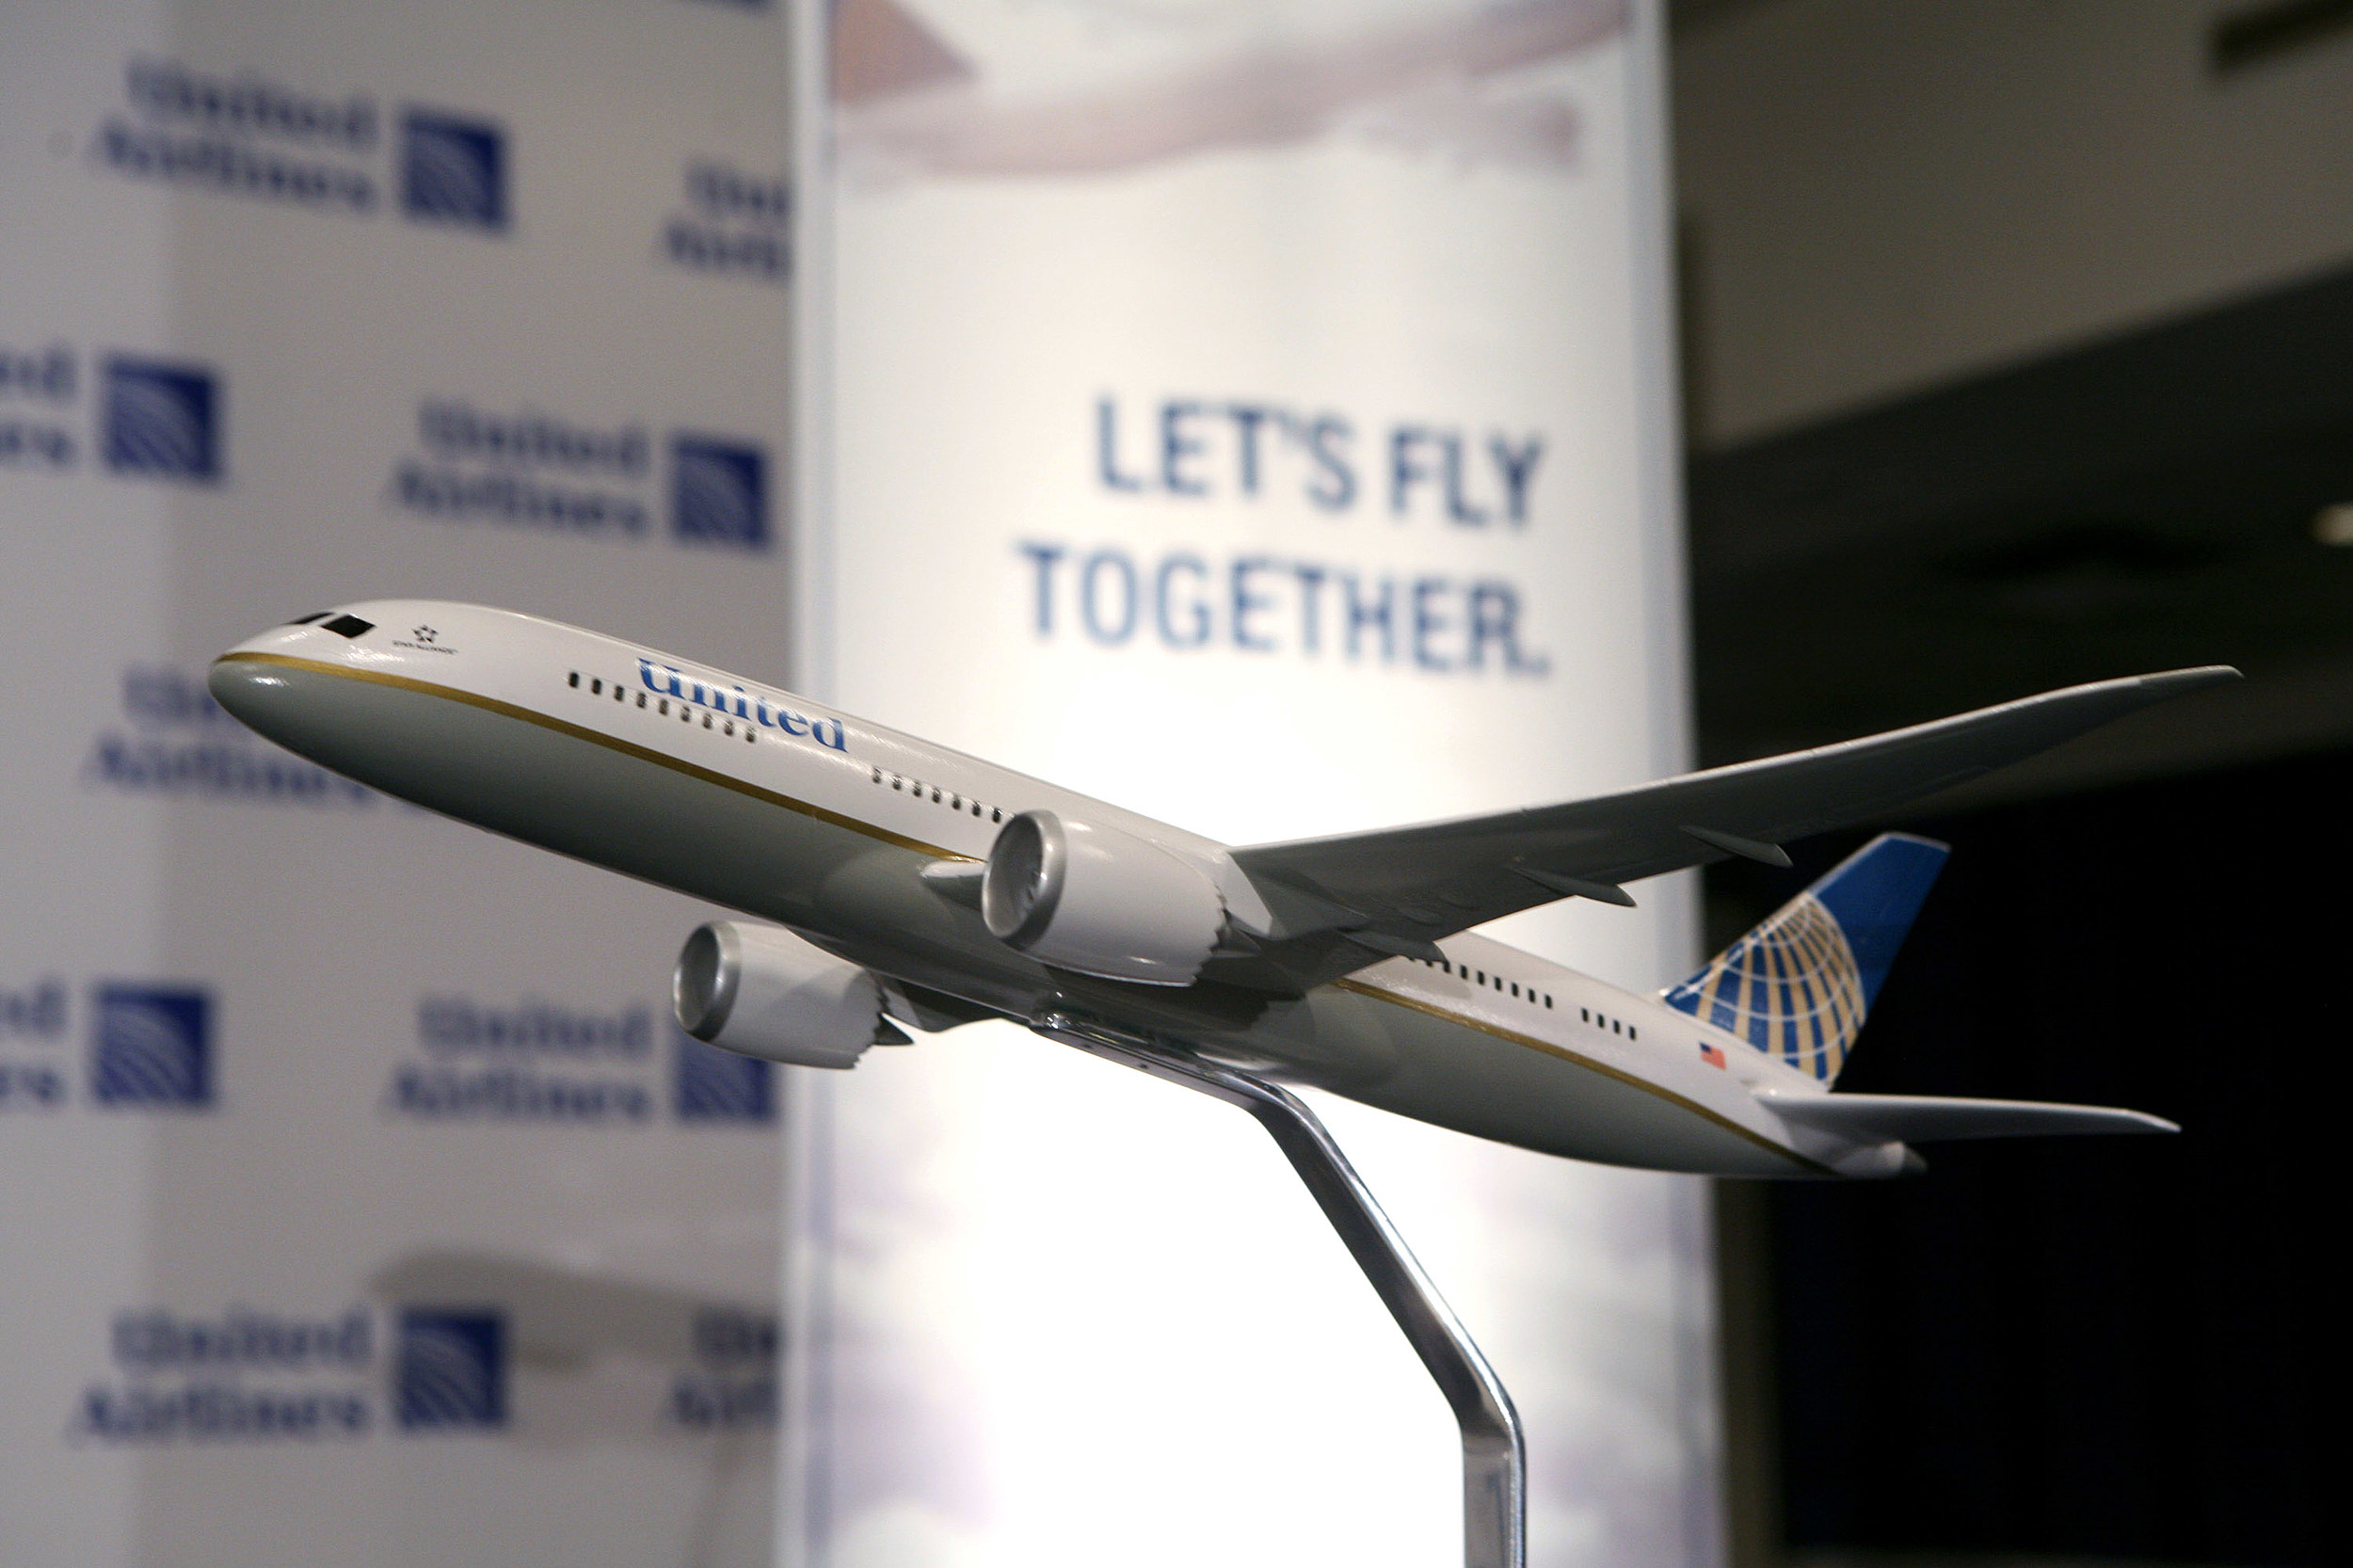 United And Continental Announce Merger To Form World's Largest Airline